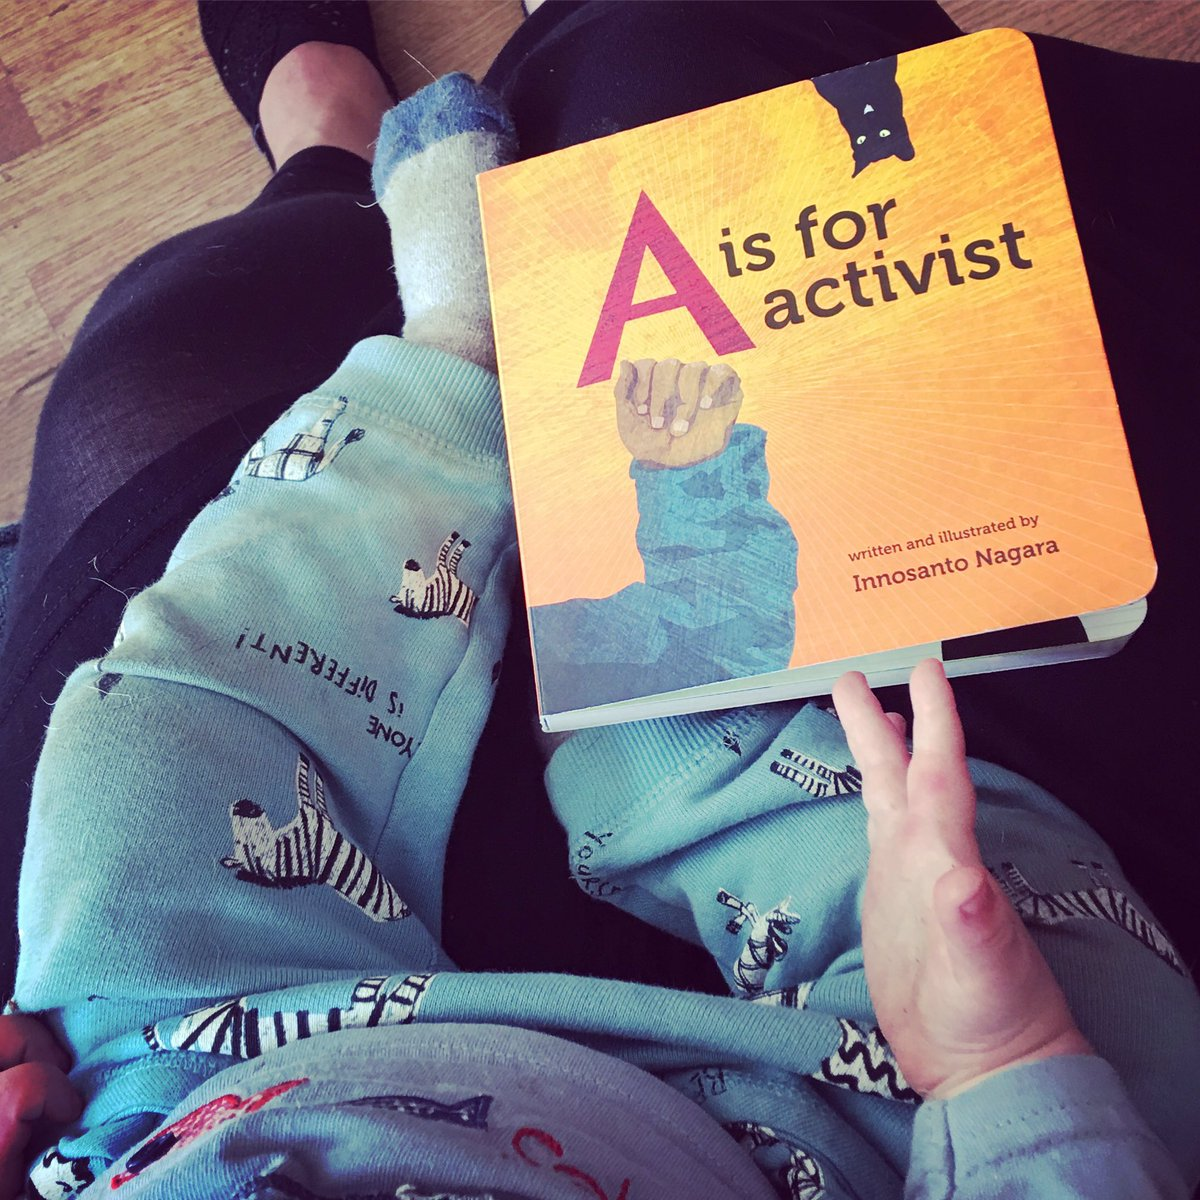 start them young #storytime #aisforactivist great find for #baby at the #LRBF17  #activist #ChildrensBooks @ARBRadBookfair <br>http://pic.twitter.com/tytmKb9Kk3